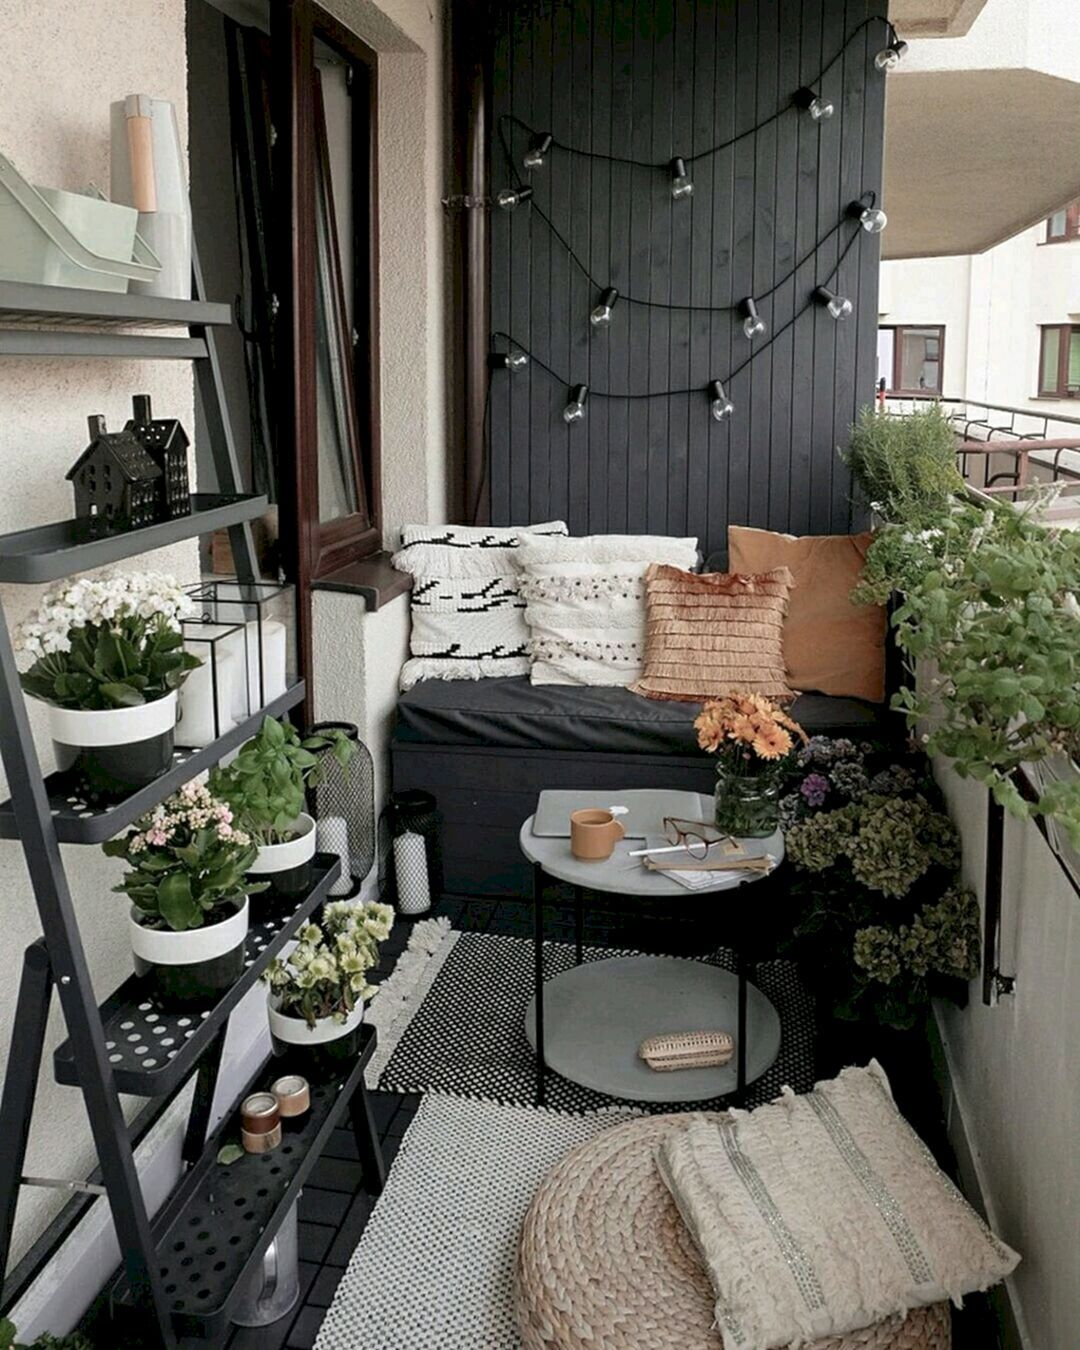 20 Cozy And Small Apartment Balcony Decoration Ideas In 2020 With